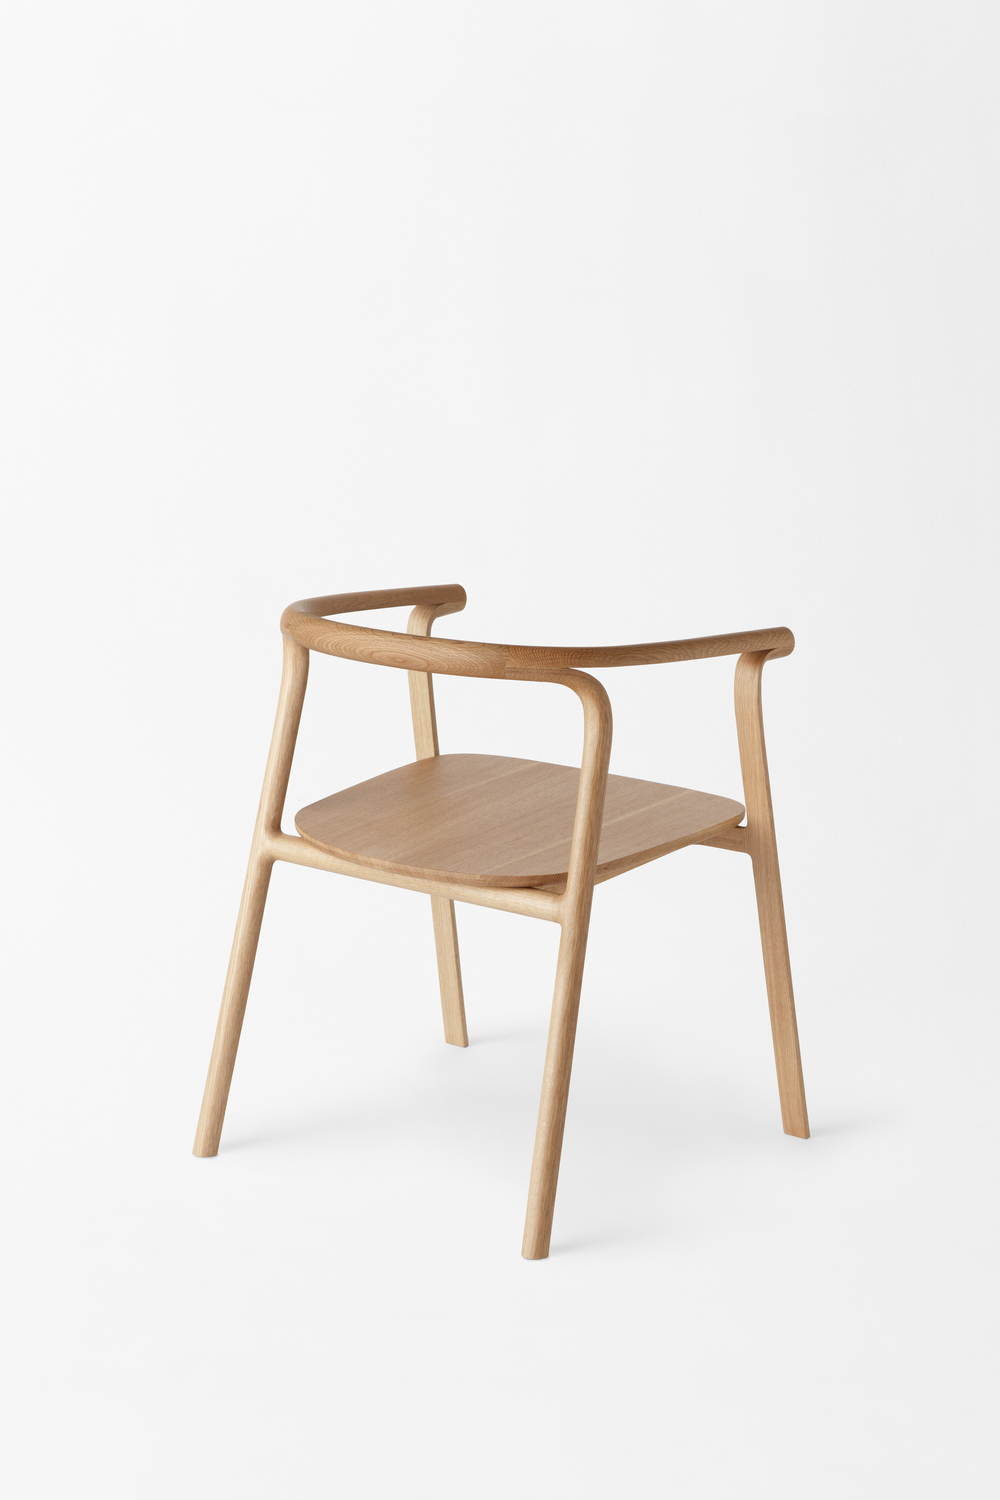 Nendo - Splinter Armchair - 4.jpg